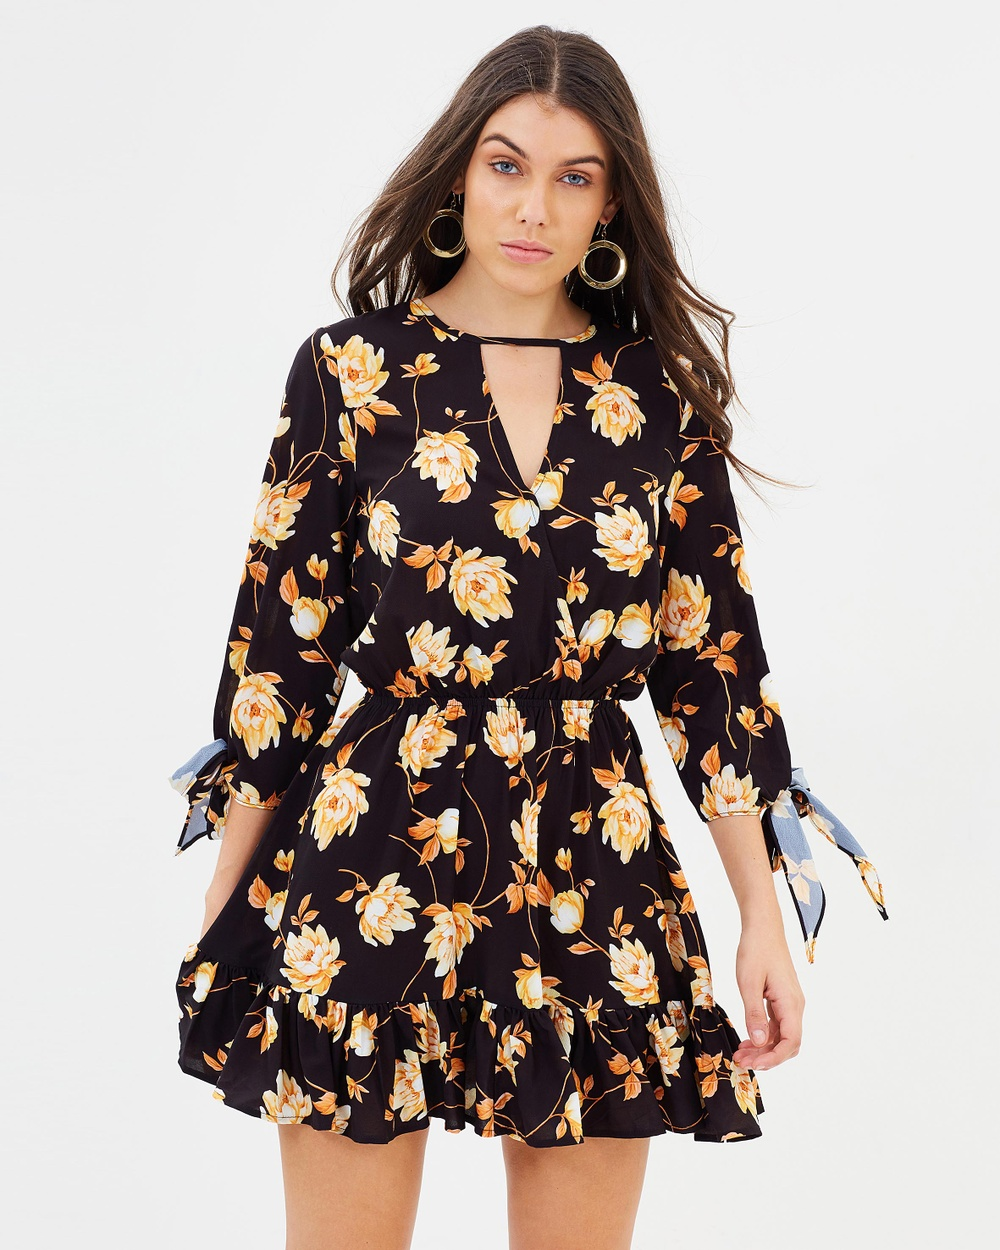 Photo of Atmos & Here Autumn Floral ICONIC EXCLUSIVE - Adriana Wrap Over Dress - beautiful dress from Atmos & Here online